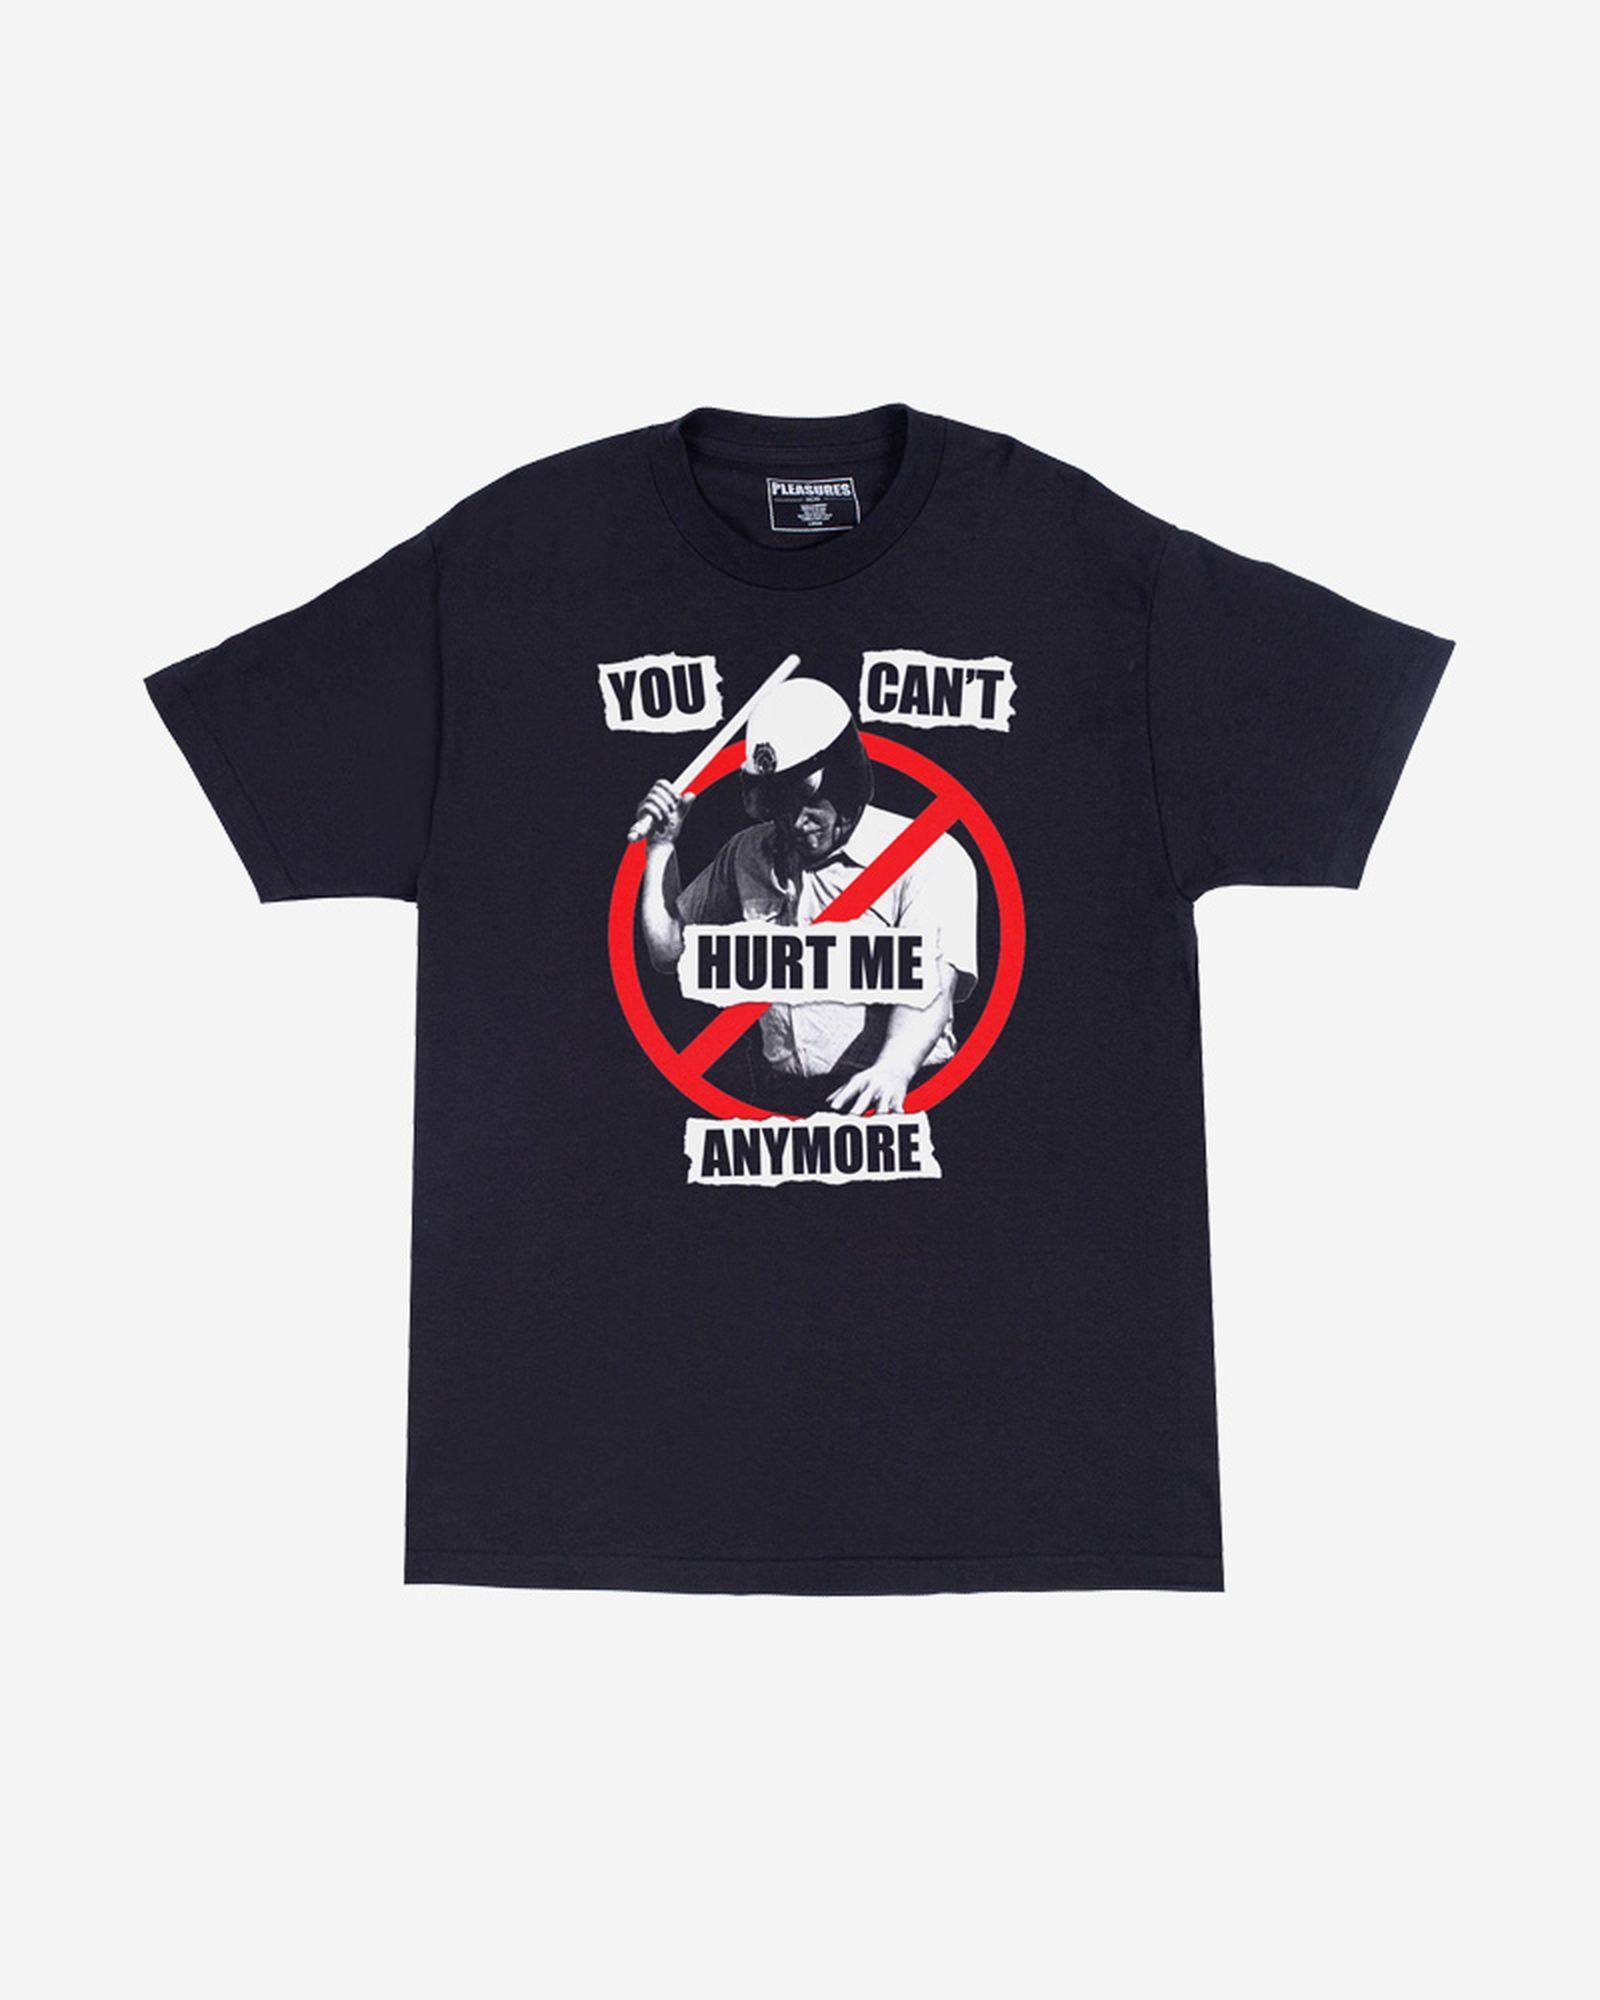 support-black-lives-matter-causes-with-these-charity-t-shirts-and-more-2-14